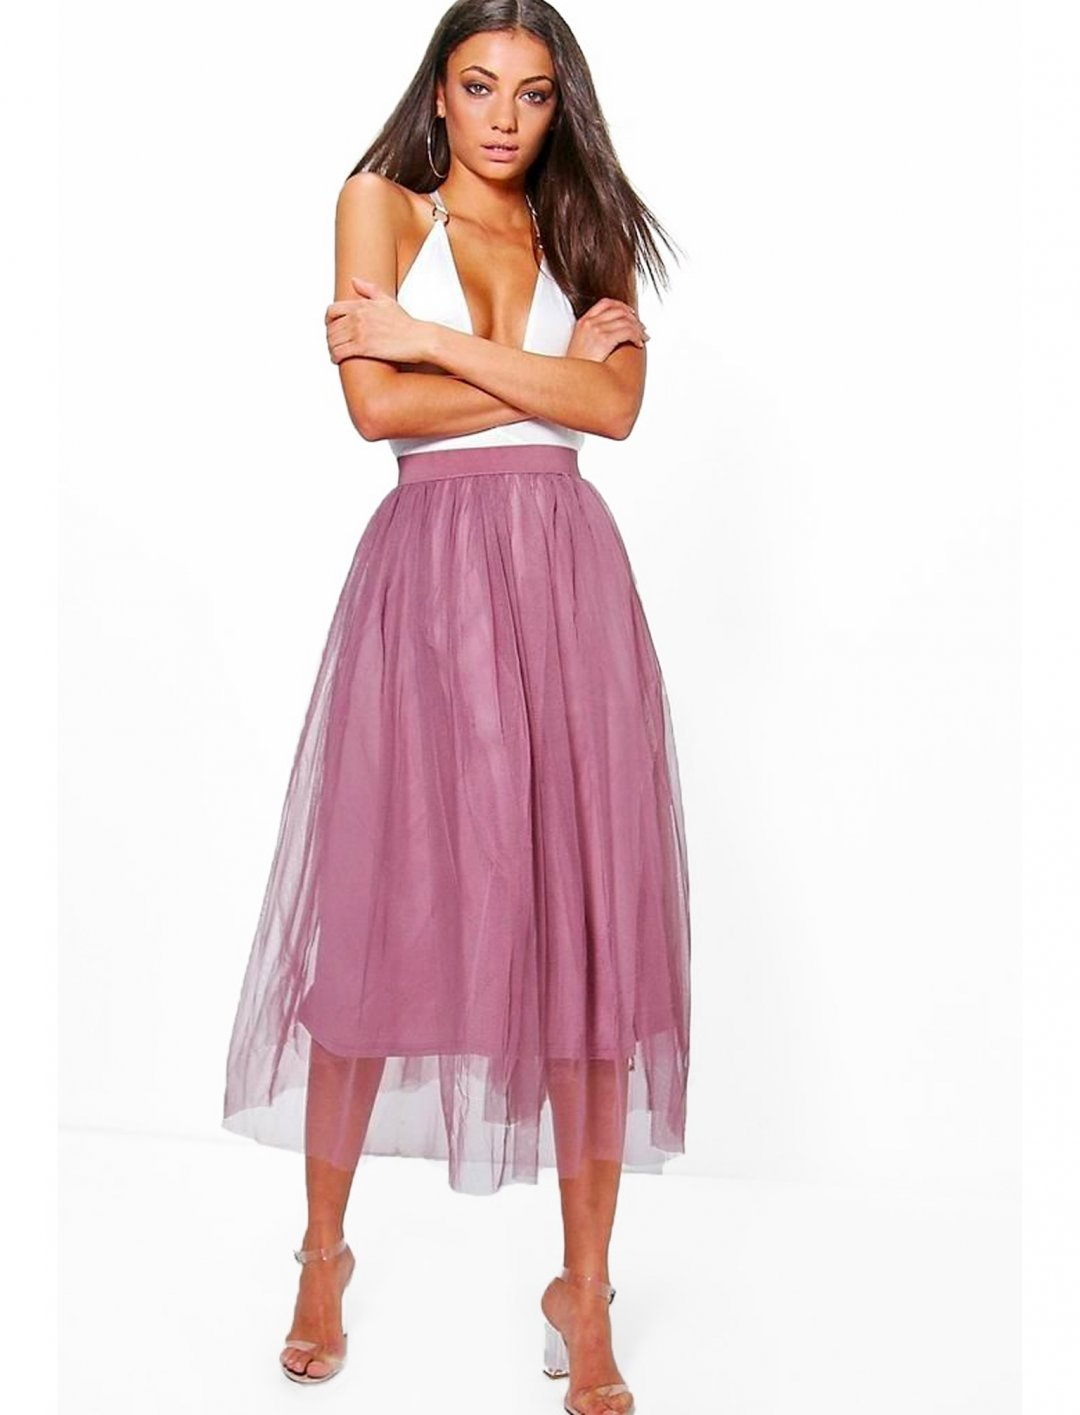 "Tulle Skirt {""id"":5,""product_section_id"":1,""name"":""Clothing"",""order"":5} boohoo"